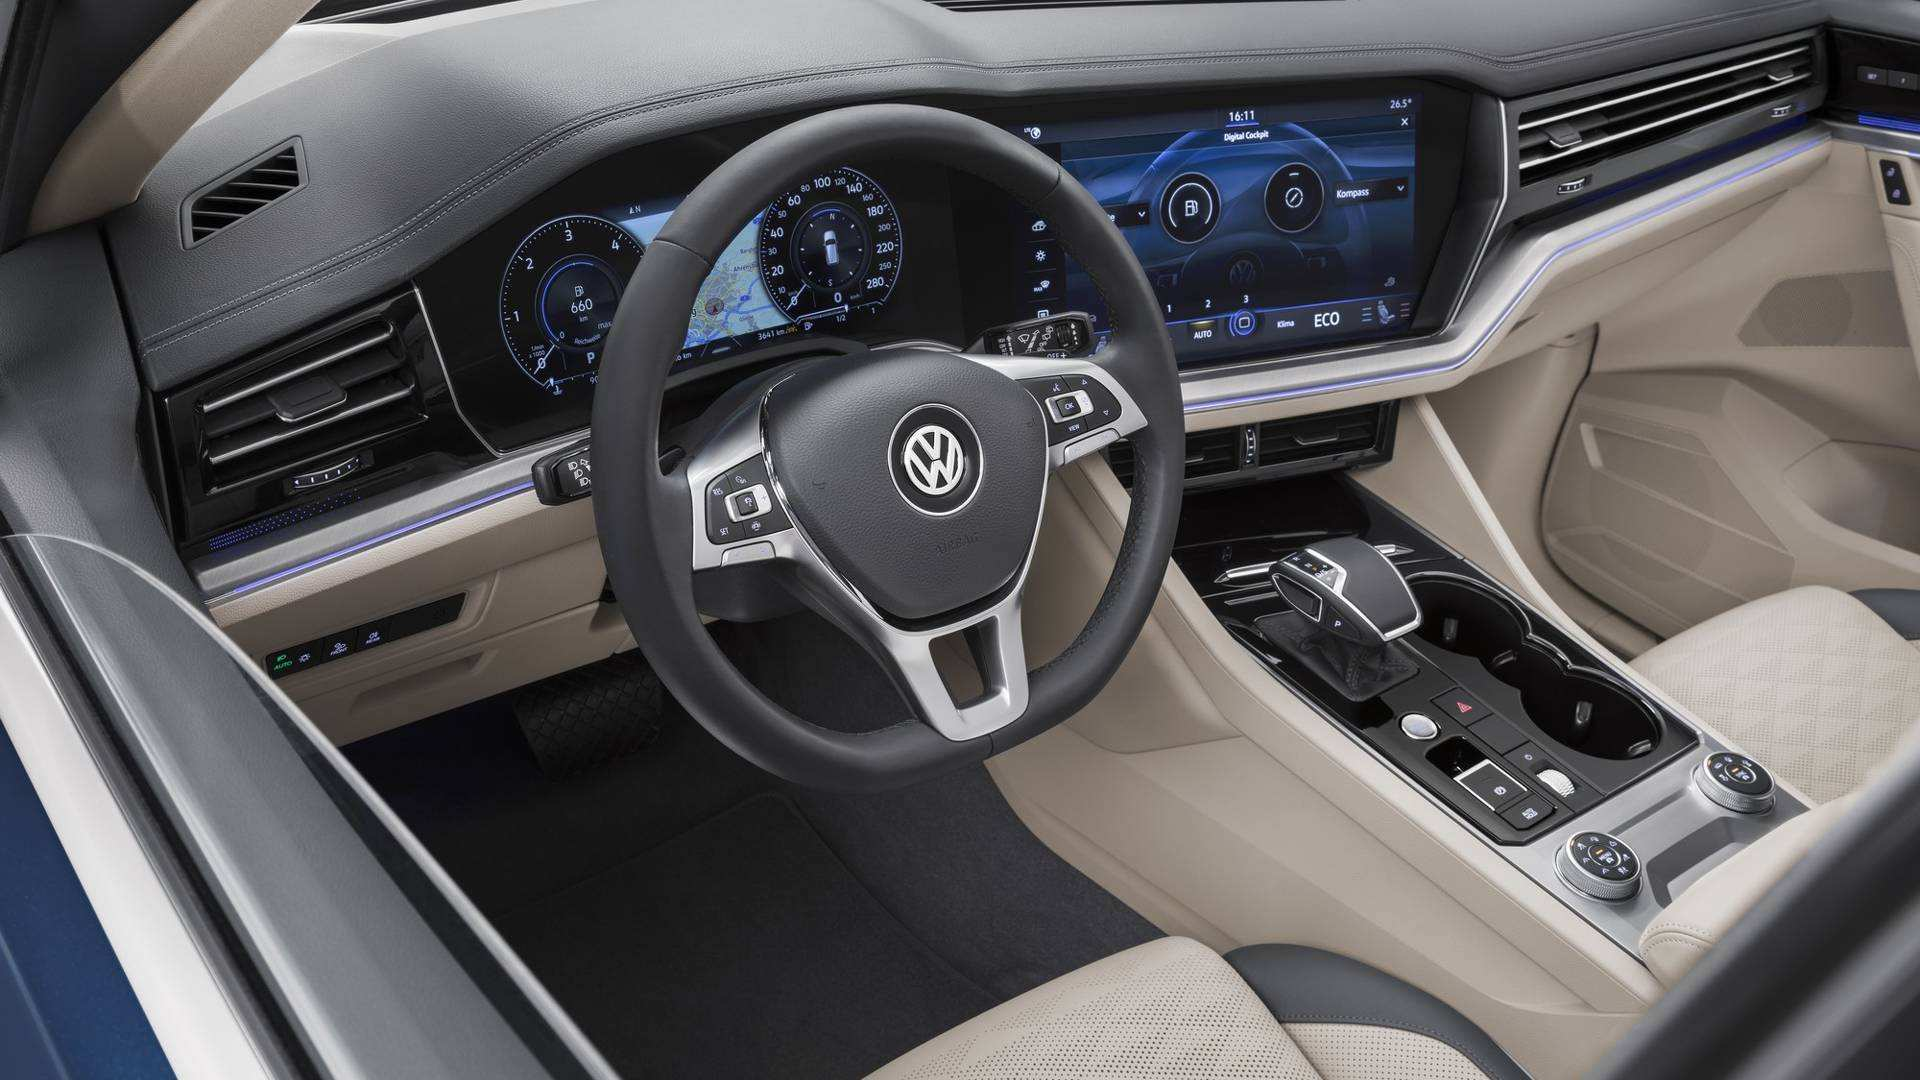 85 New 2019 Volkswagen Touareg Interior Engine for 2019 Volkswagen Touareg Interior